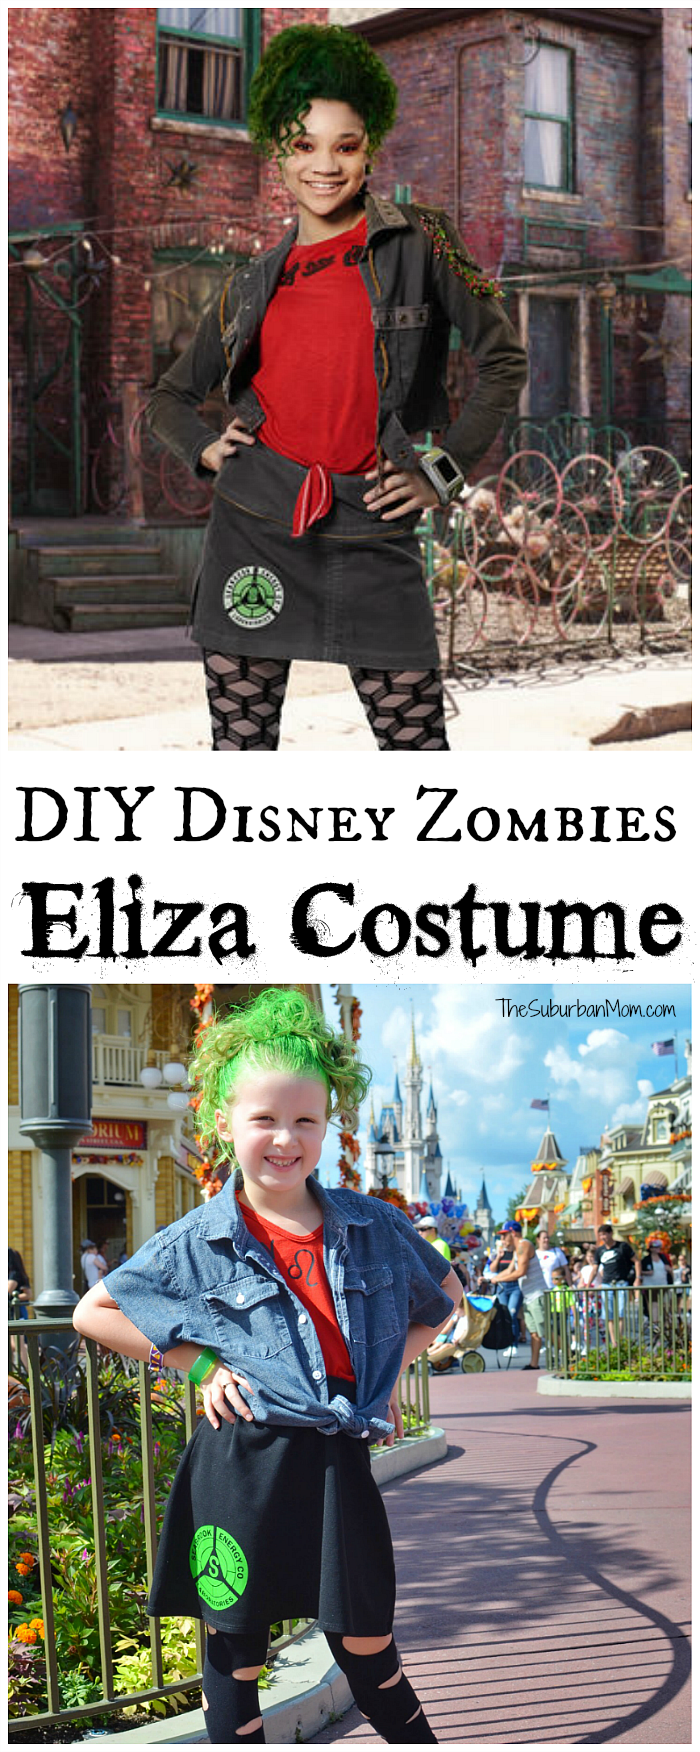 DIY Disney Zombies Costume Eliza